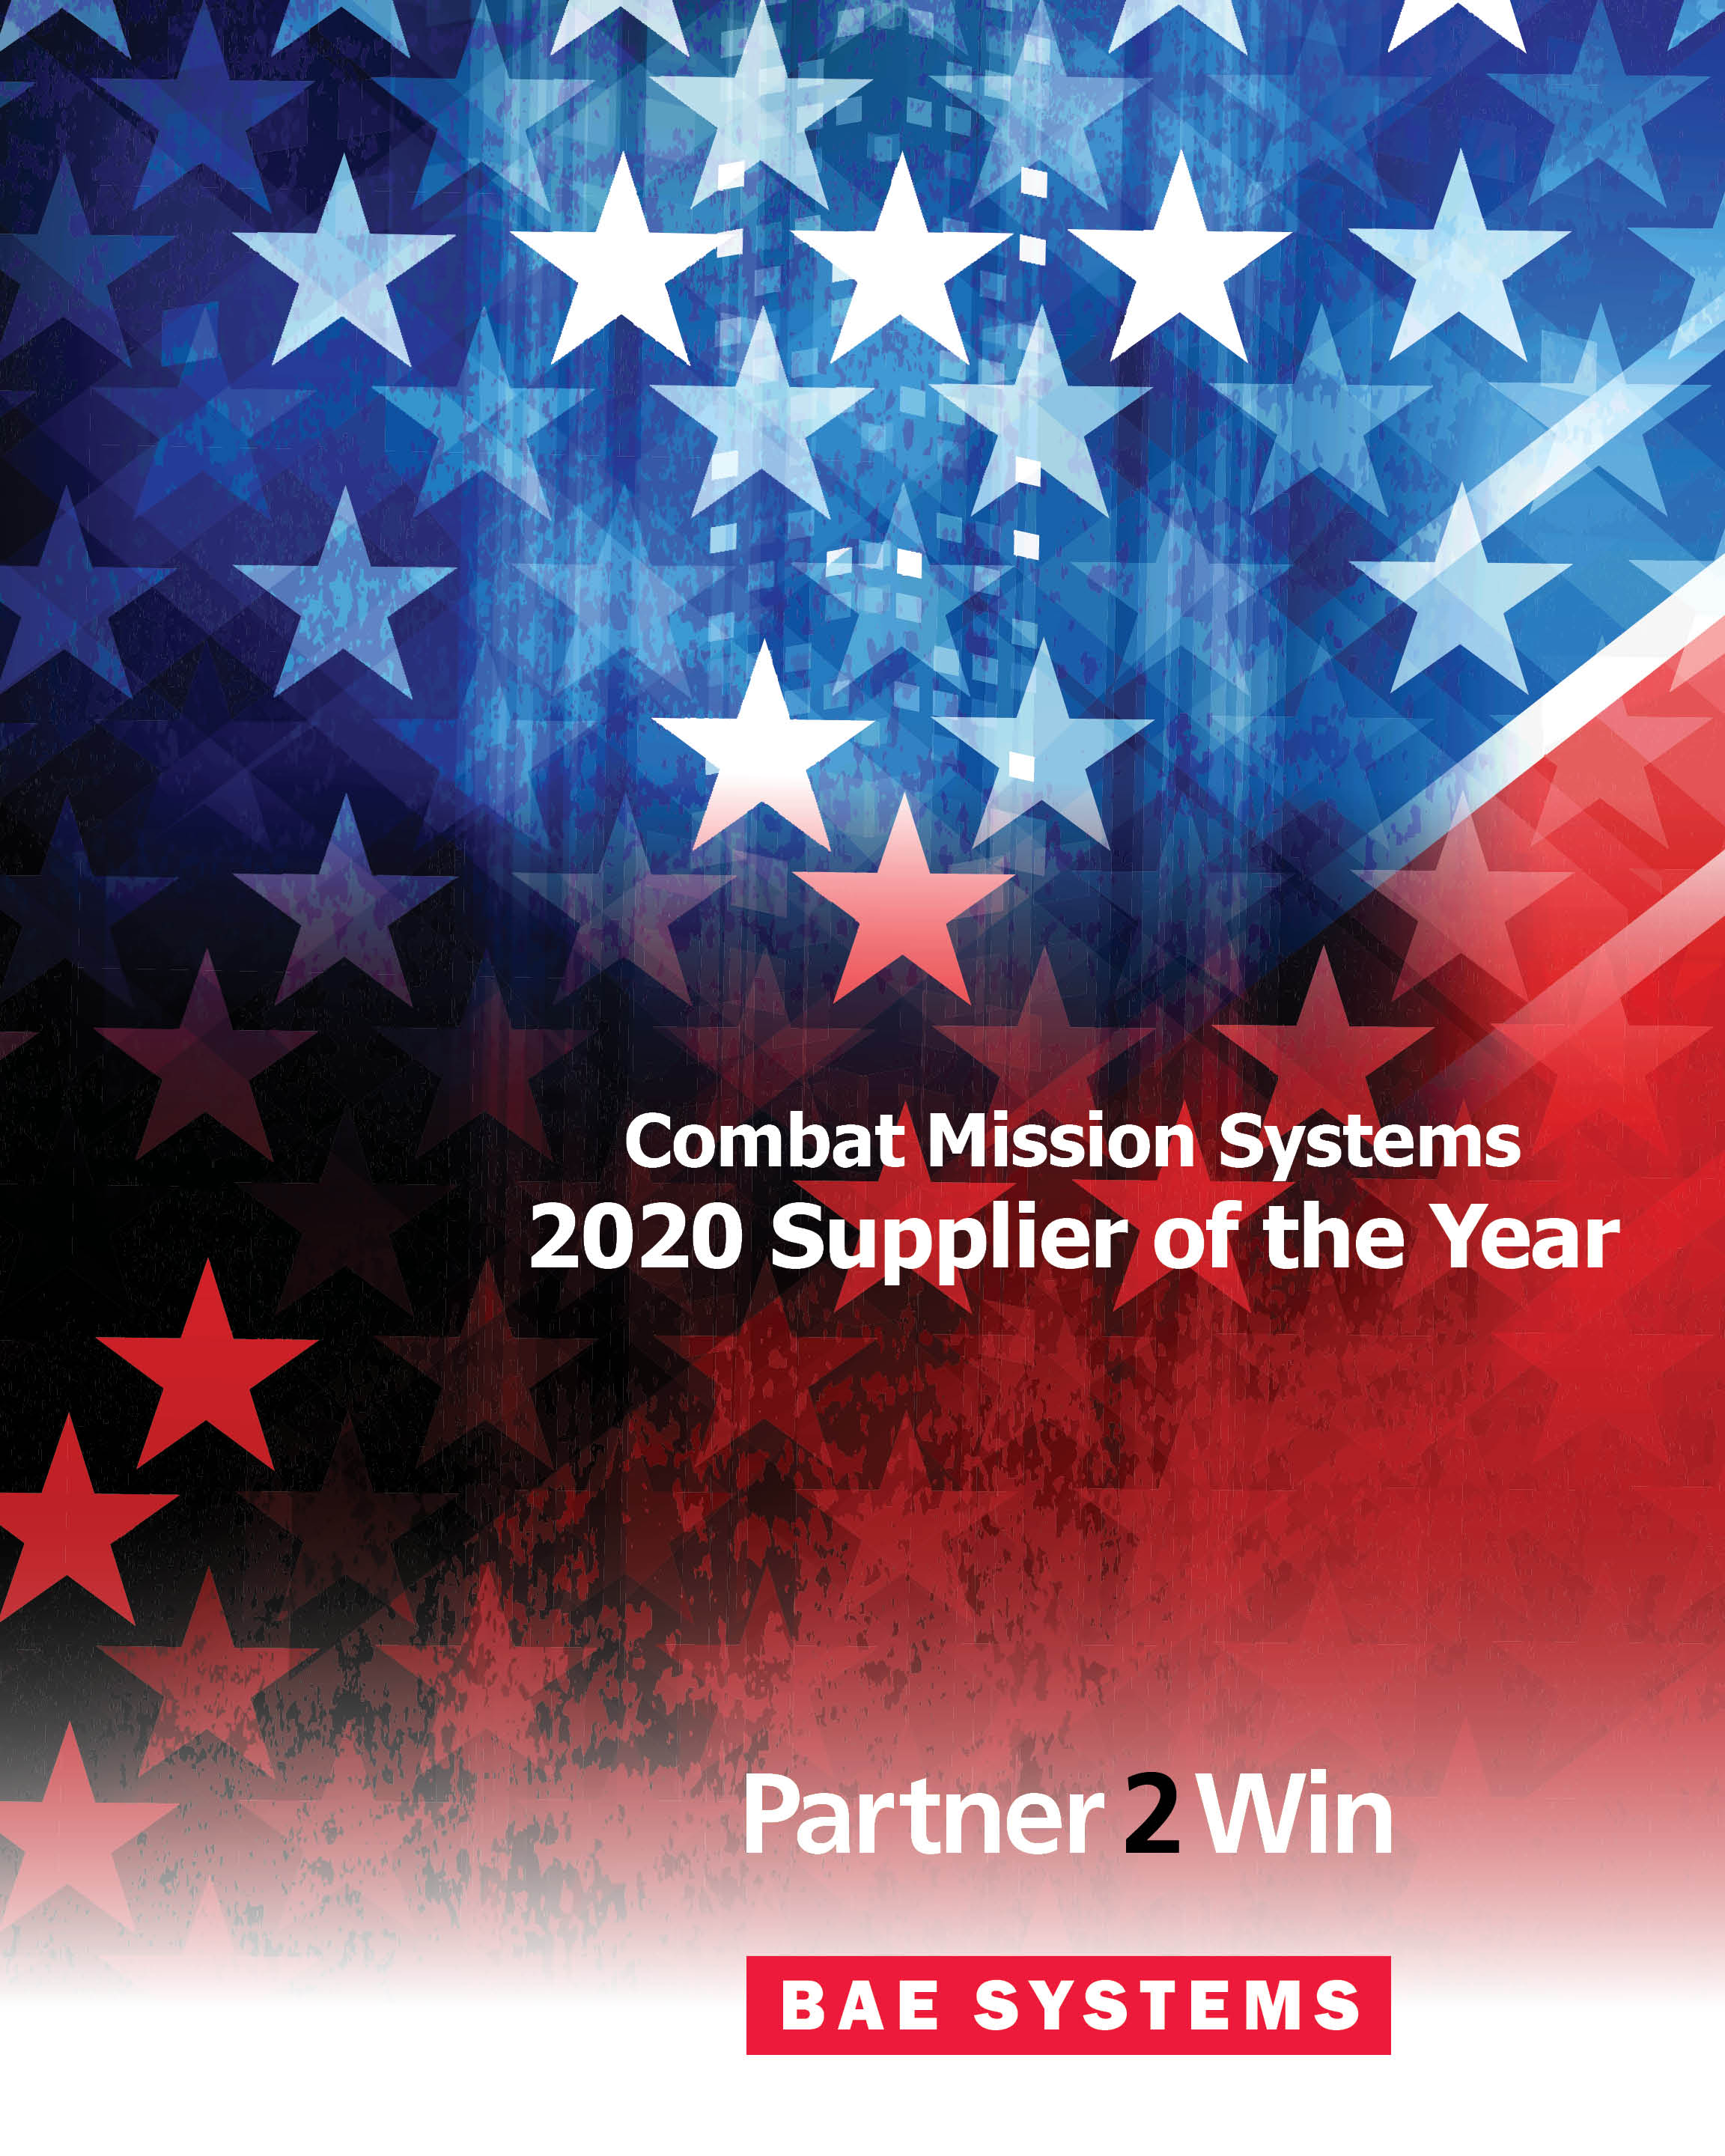 Image for BAE Systems Honors Rhinestahl AMG with a Supplier of the Year Award - baes_banner_2020 Award Winners_32x40_blank